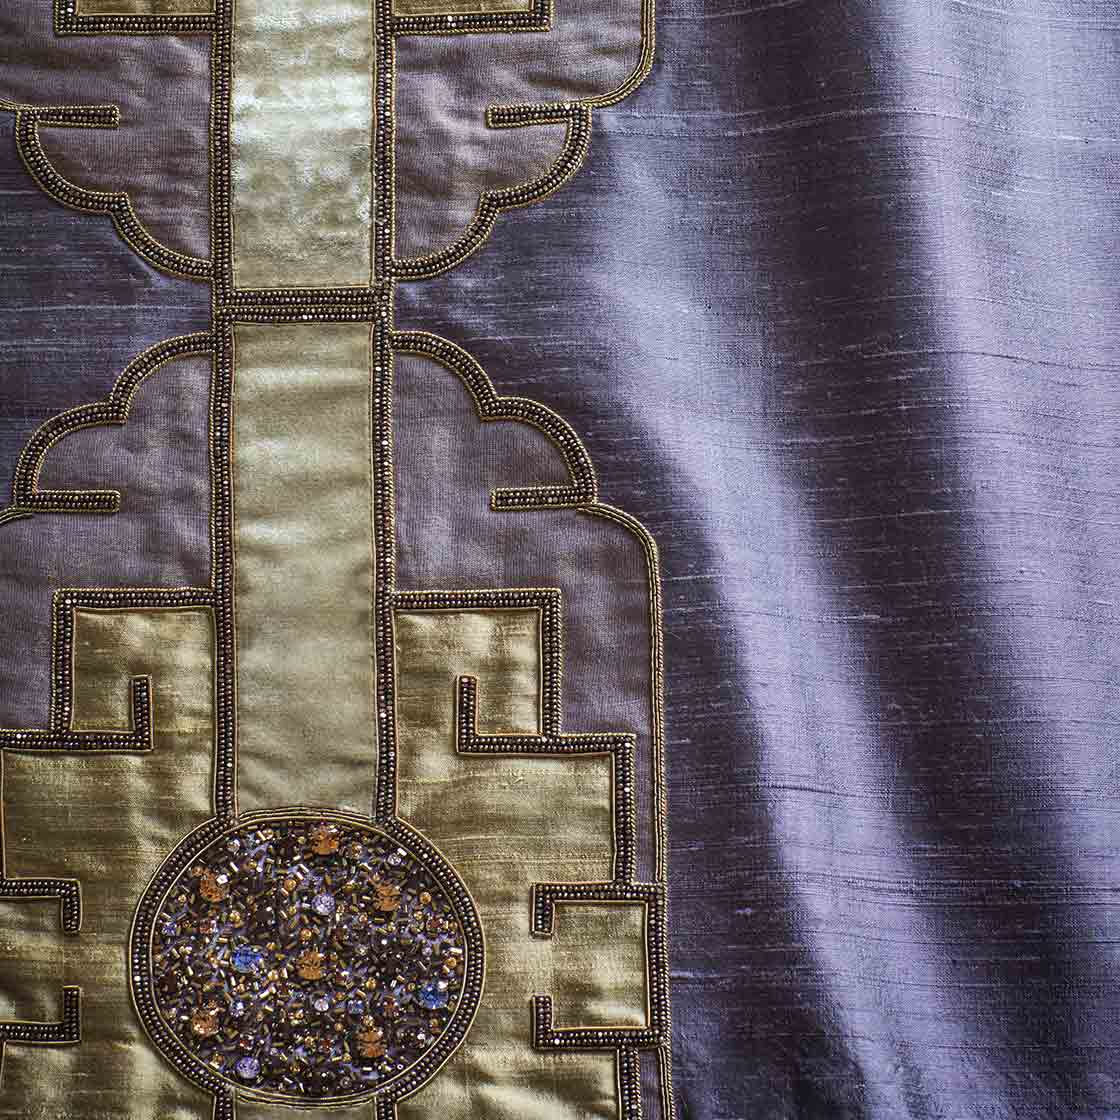 Tamburlaine on Erne silk - Amethyst - Beaumont & Fletcher - Beaumont & Fletcher